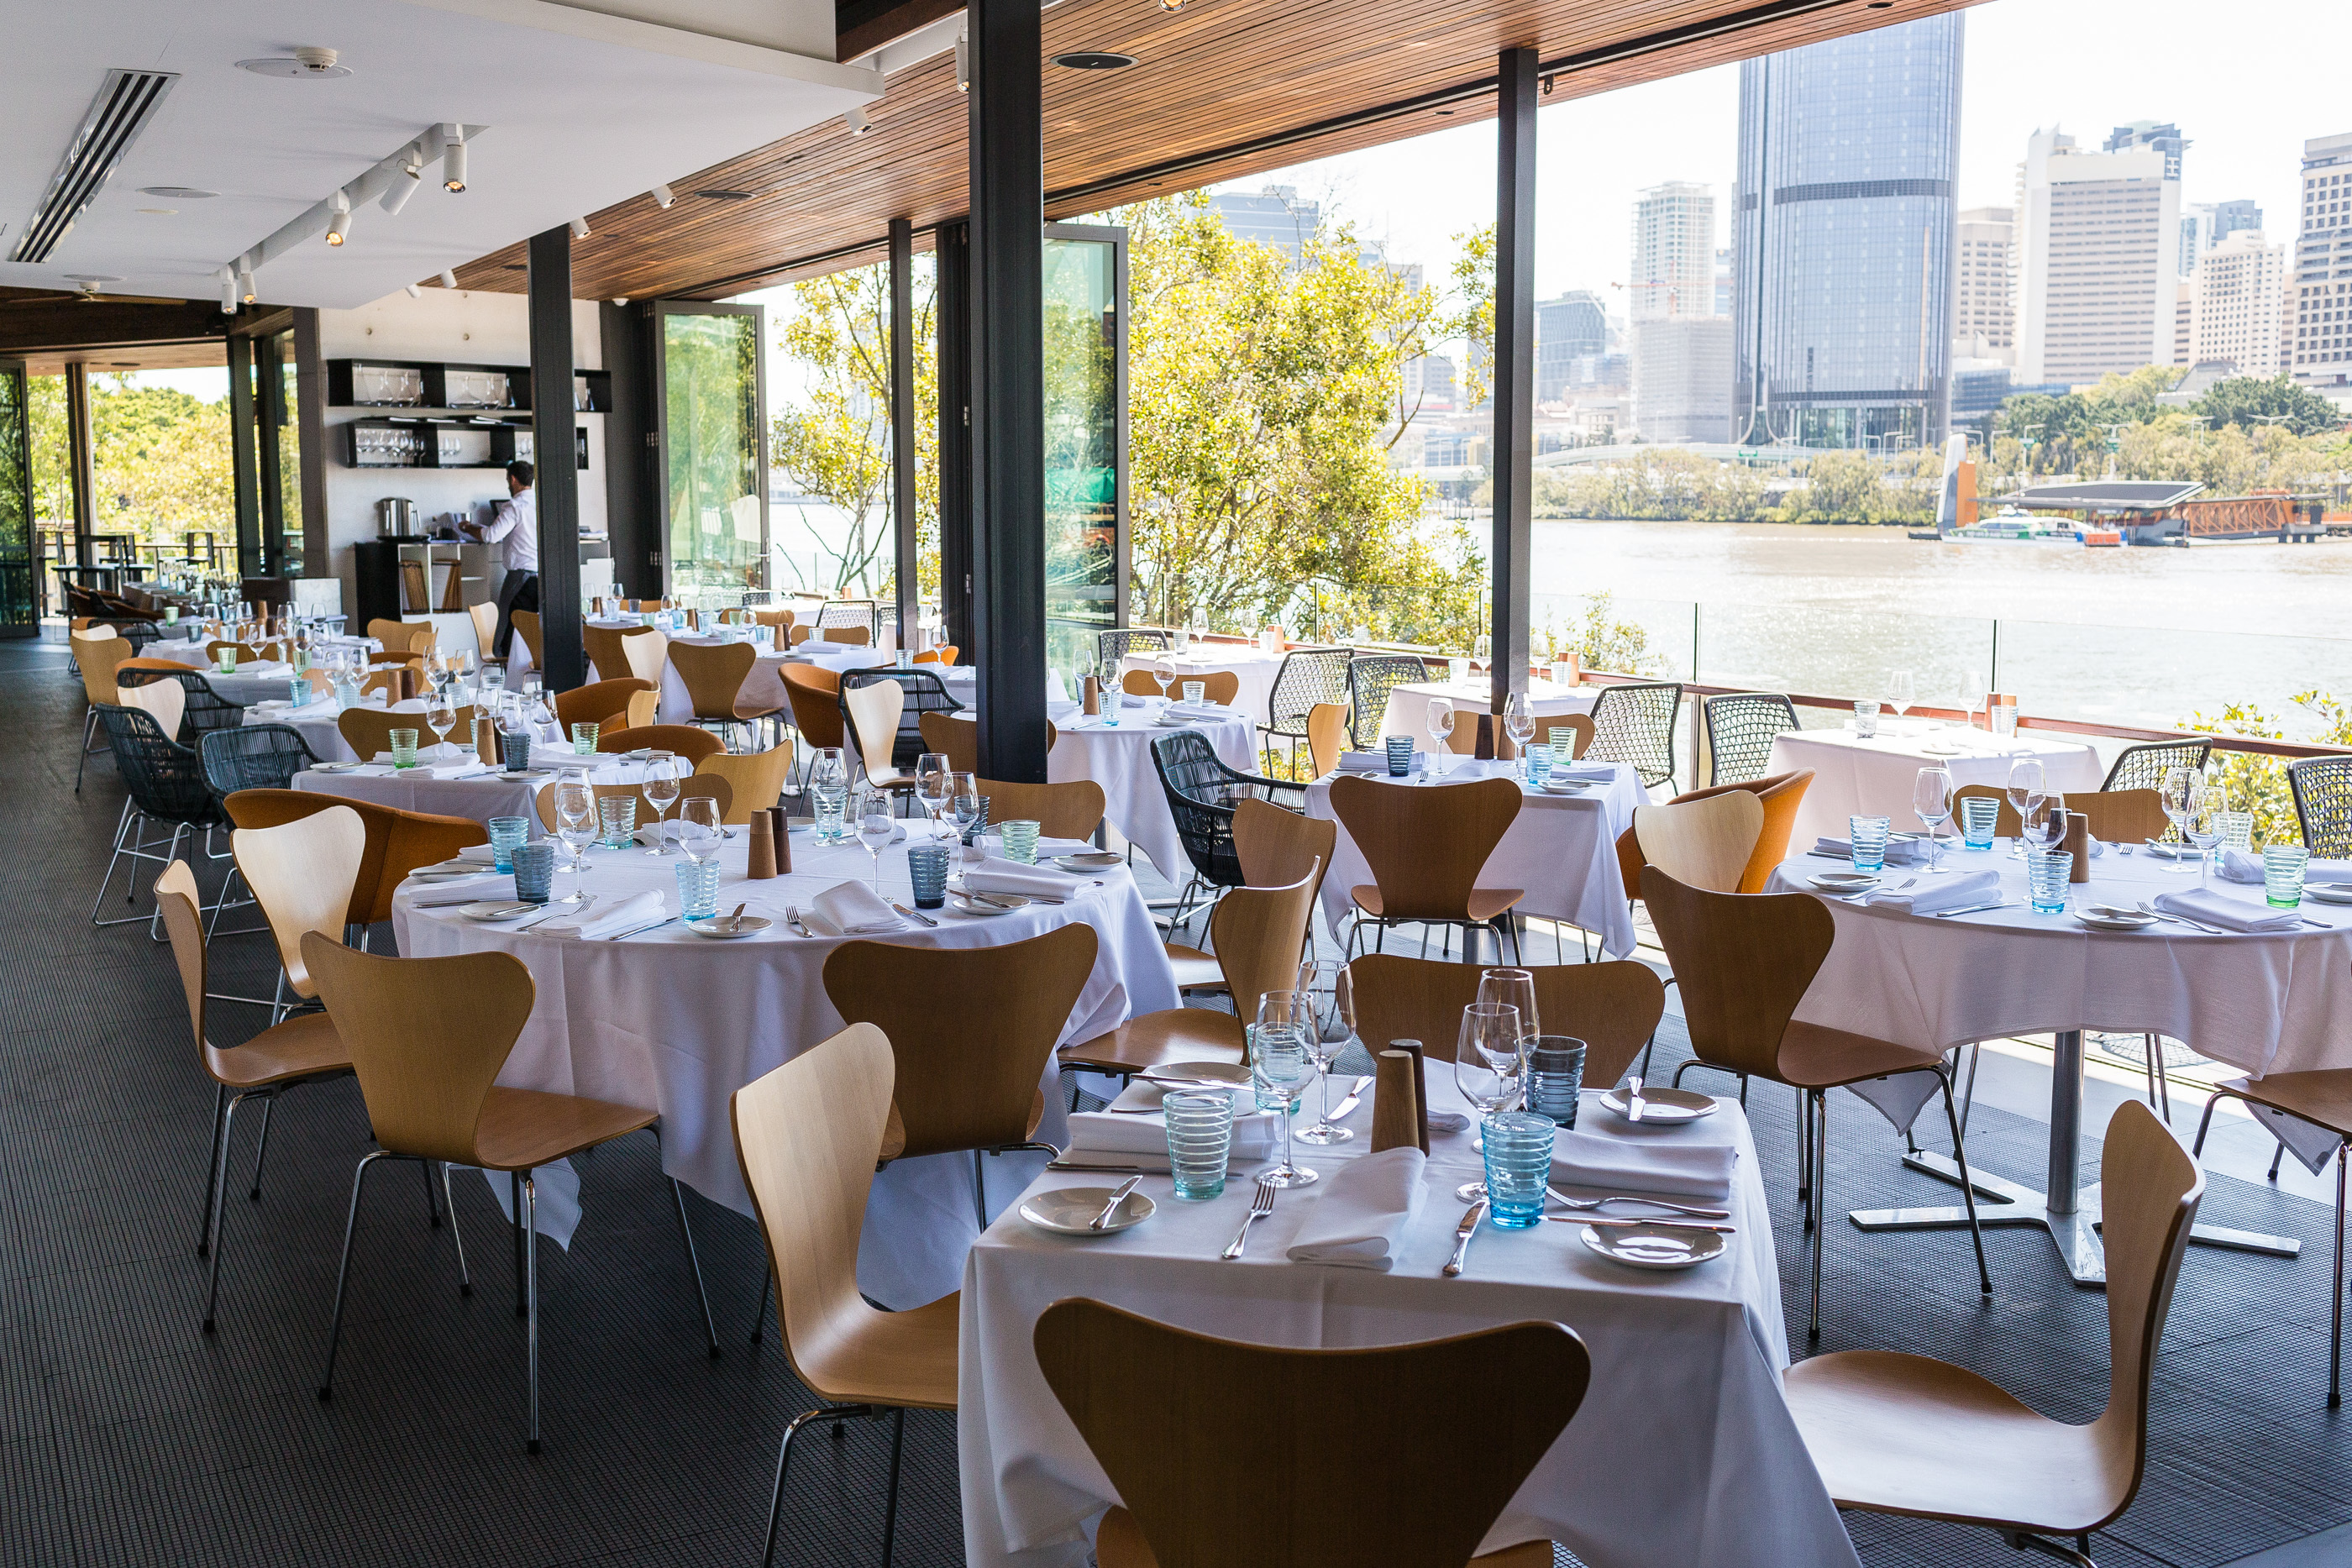 Enjoy beautiful views with your meal at Stokehouse Q